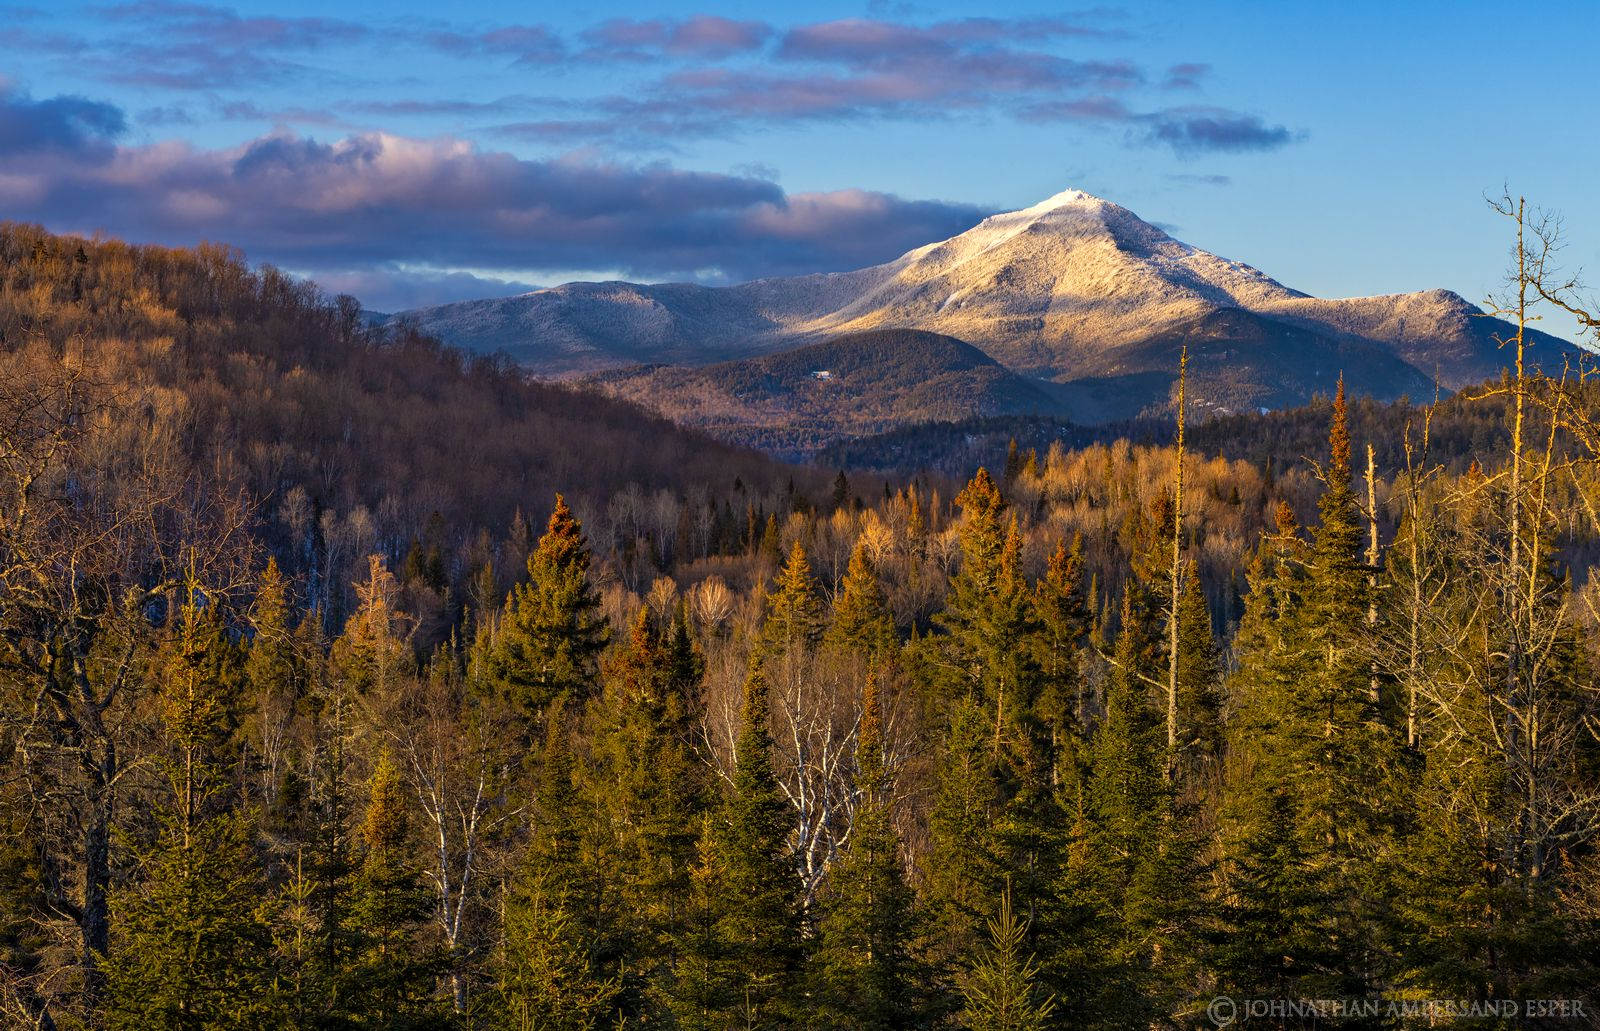 Whiteface Mt,Whiteface Mountain,Whiteface,winter,Whiteface Mt winter,alpenglow,March,2020,Adirondacks,sunset,light,River Road...